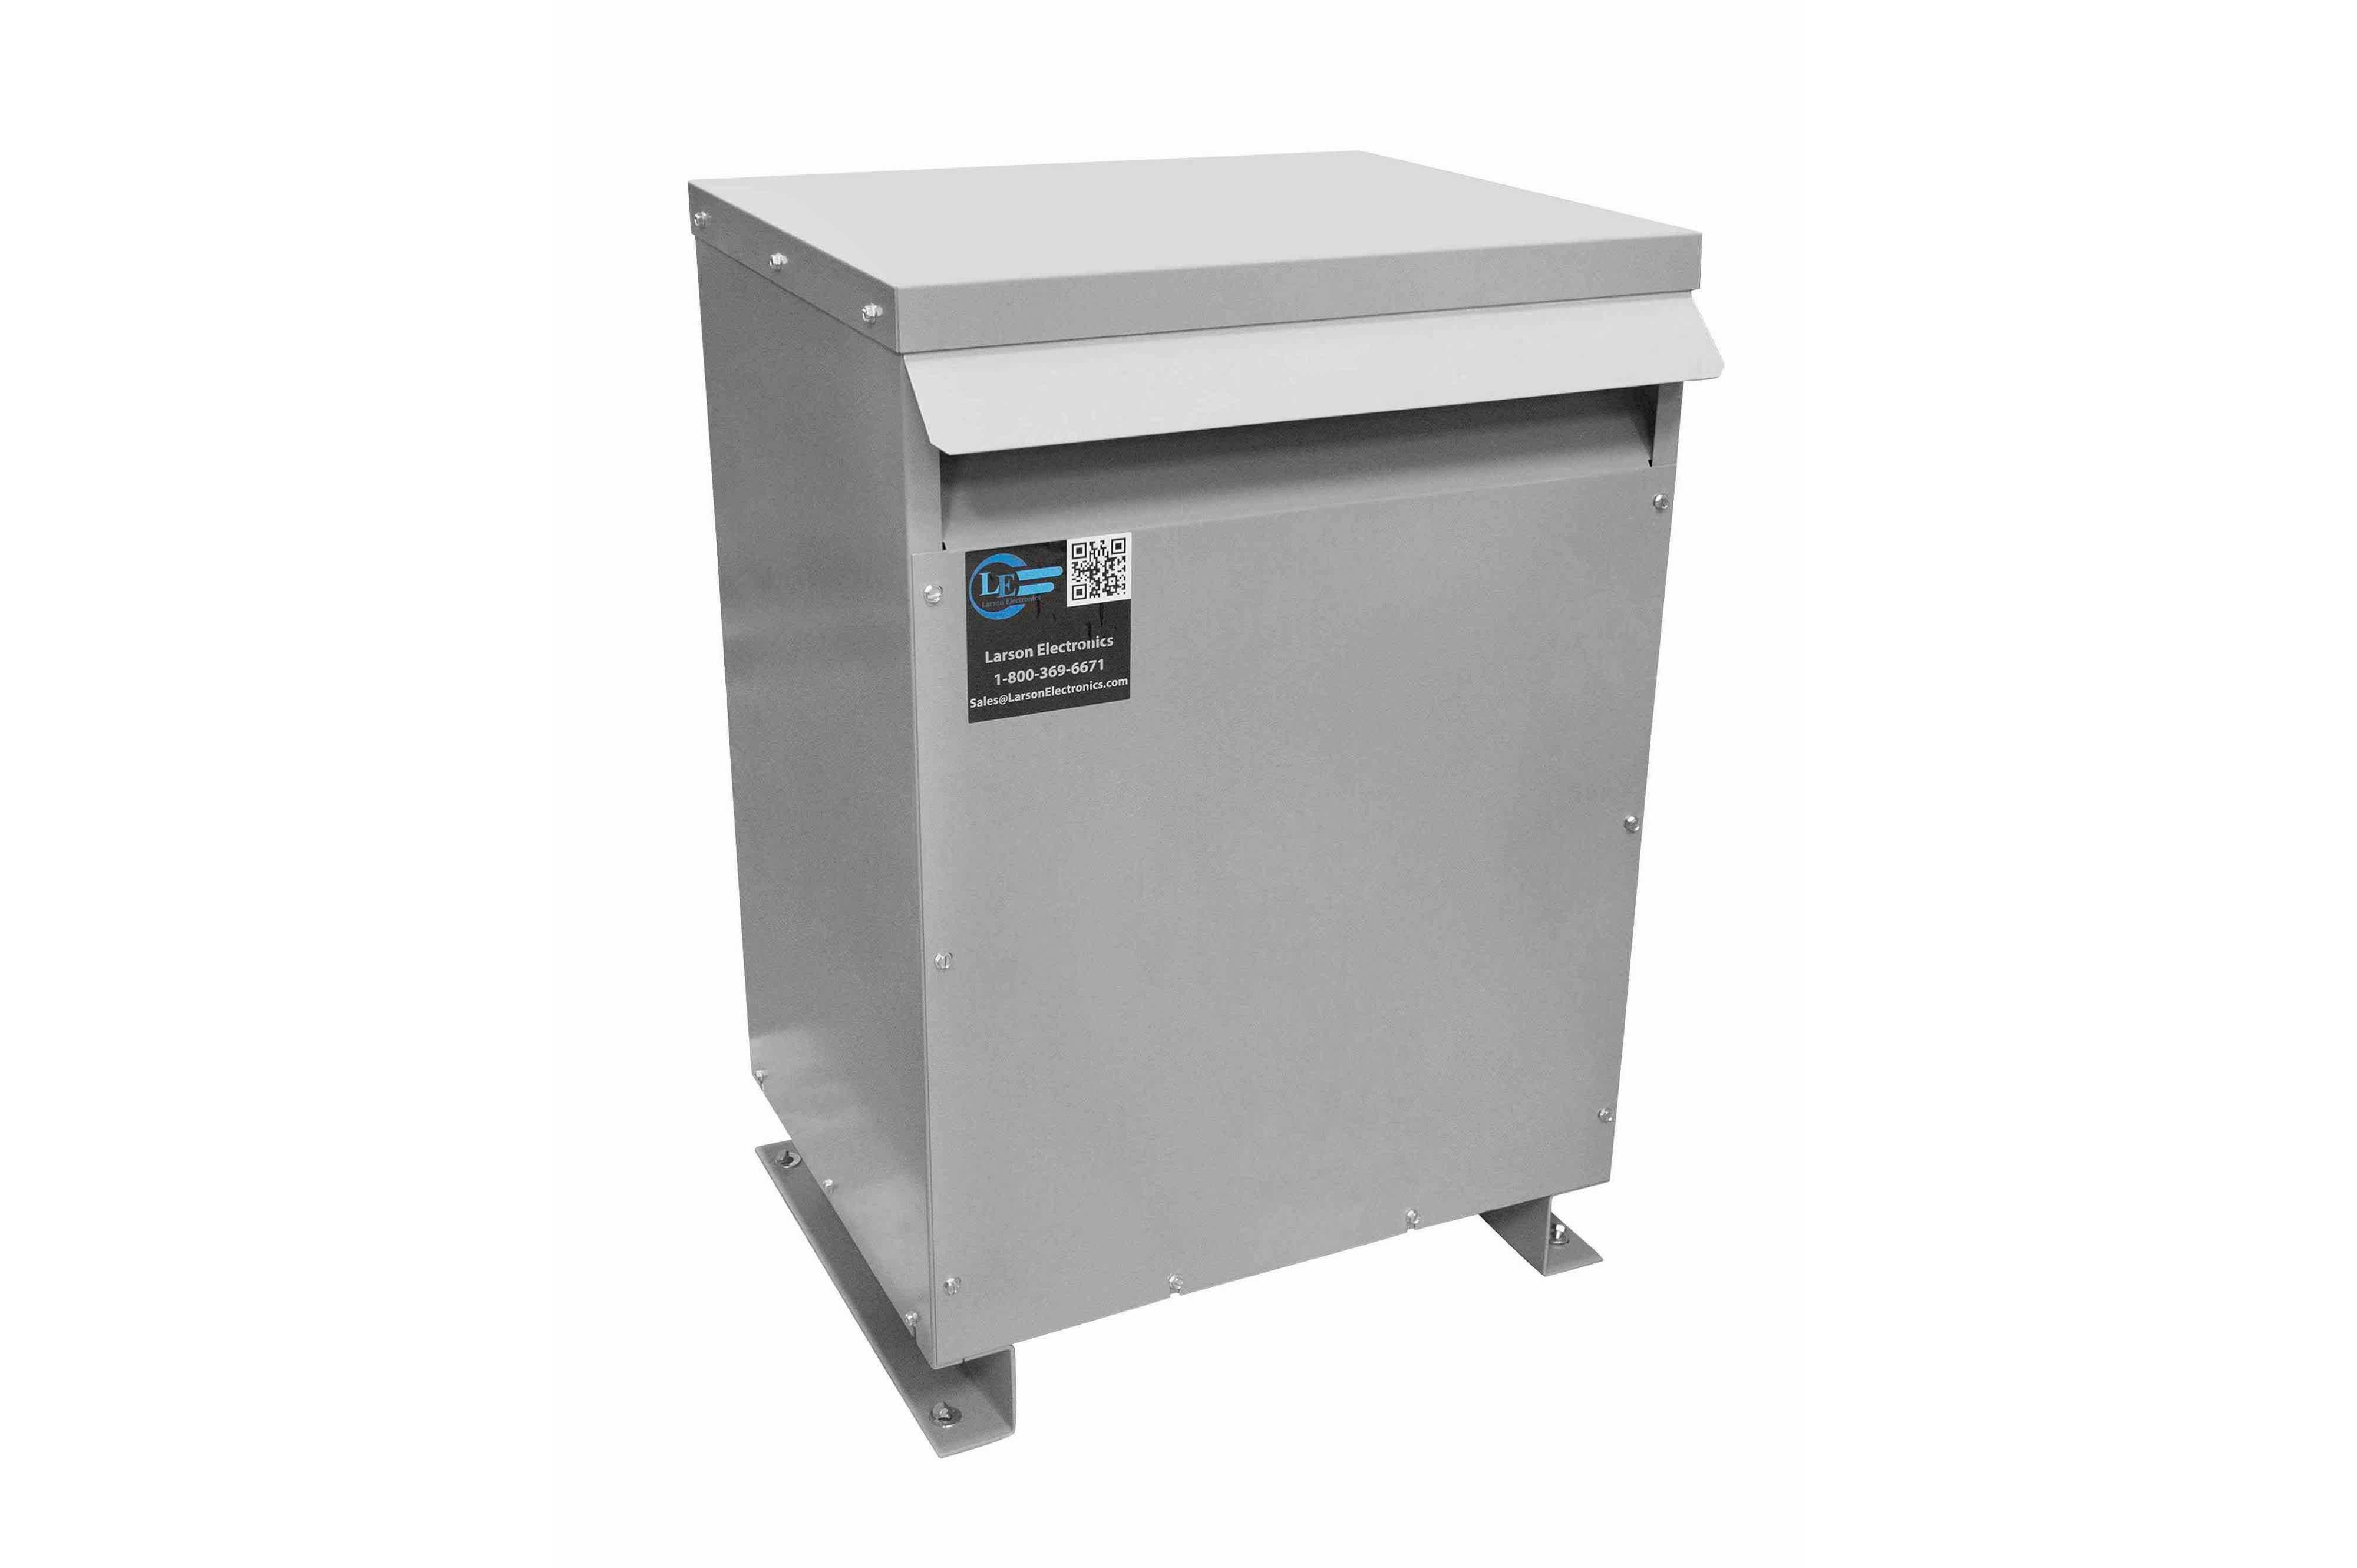 36 kVA 3PH Isolation Transformer, 415V Wye Primary, 240V/120 Delta Secondary, N3R, Ventilated, 60 Hz